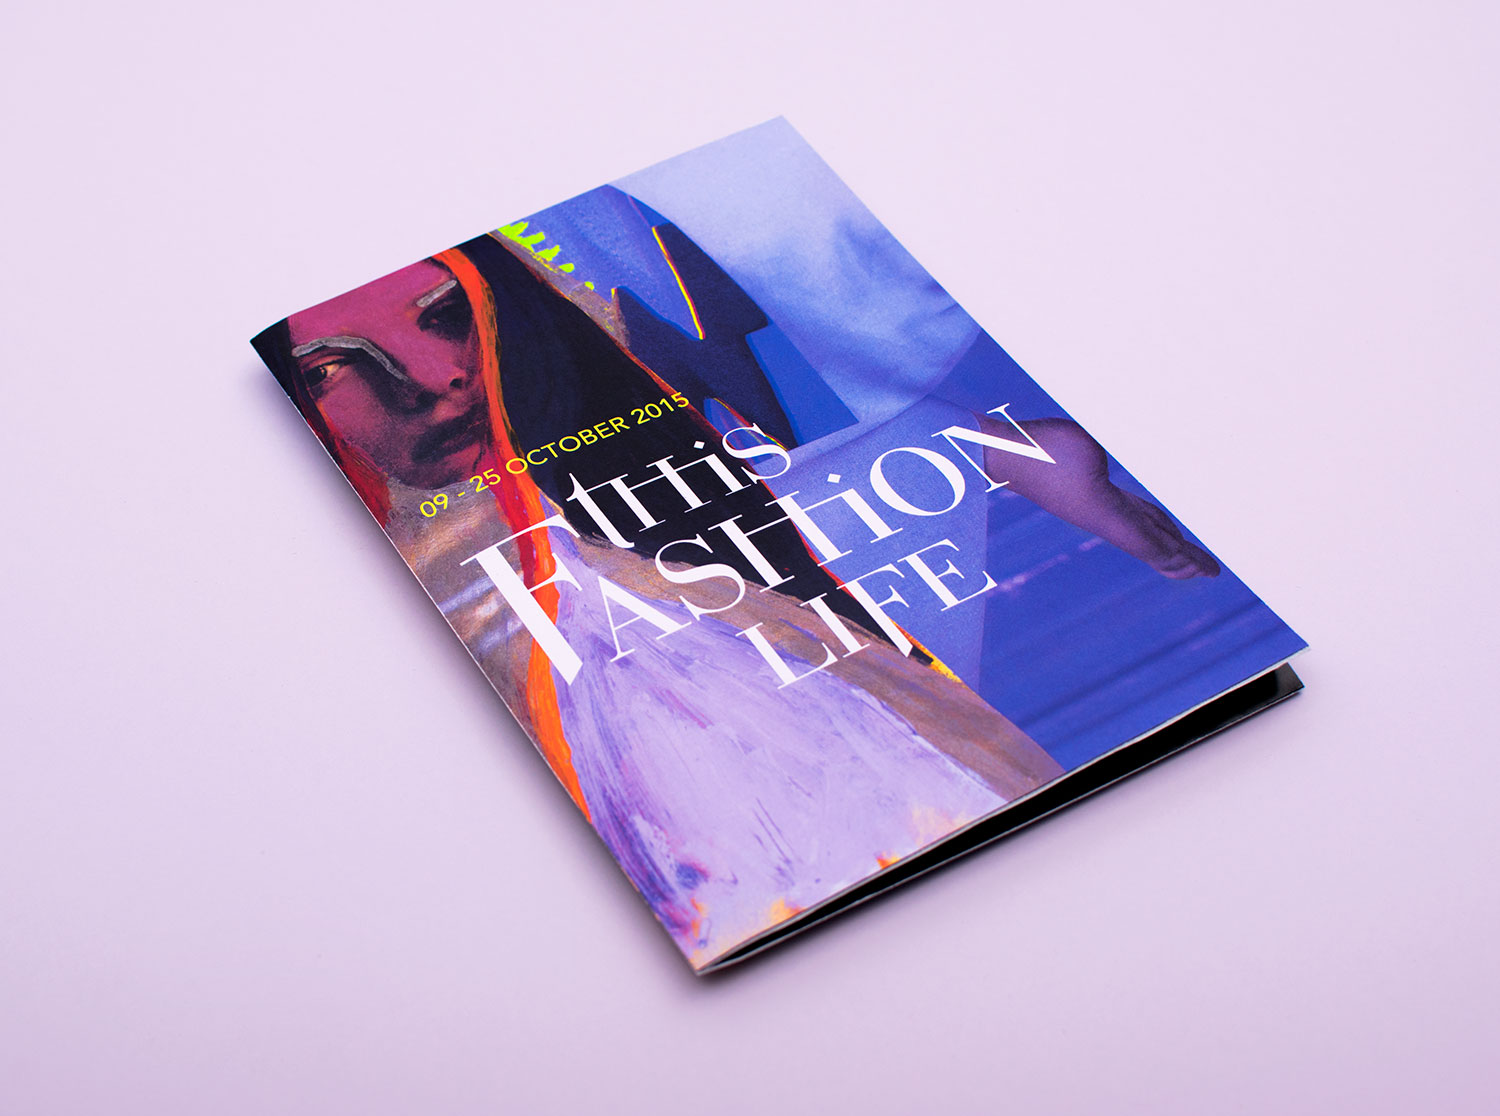 Fashion film festival brochure design and concept, featuring hand painted fashion model and Romeo & Juliet inspired typography.